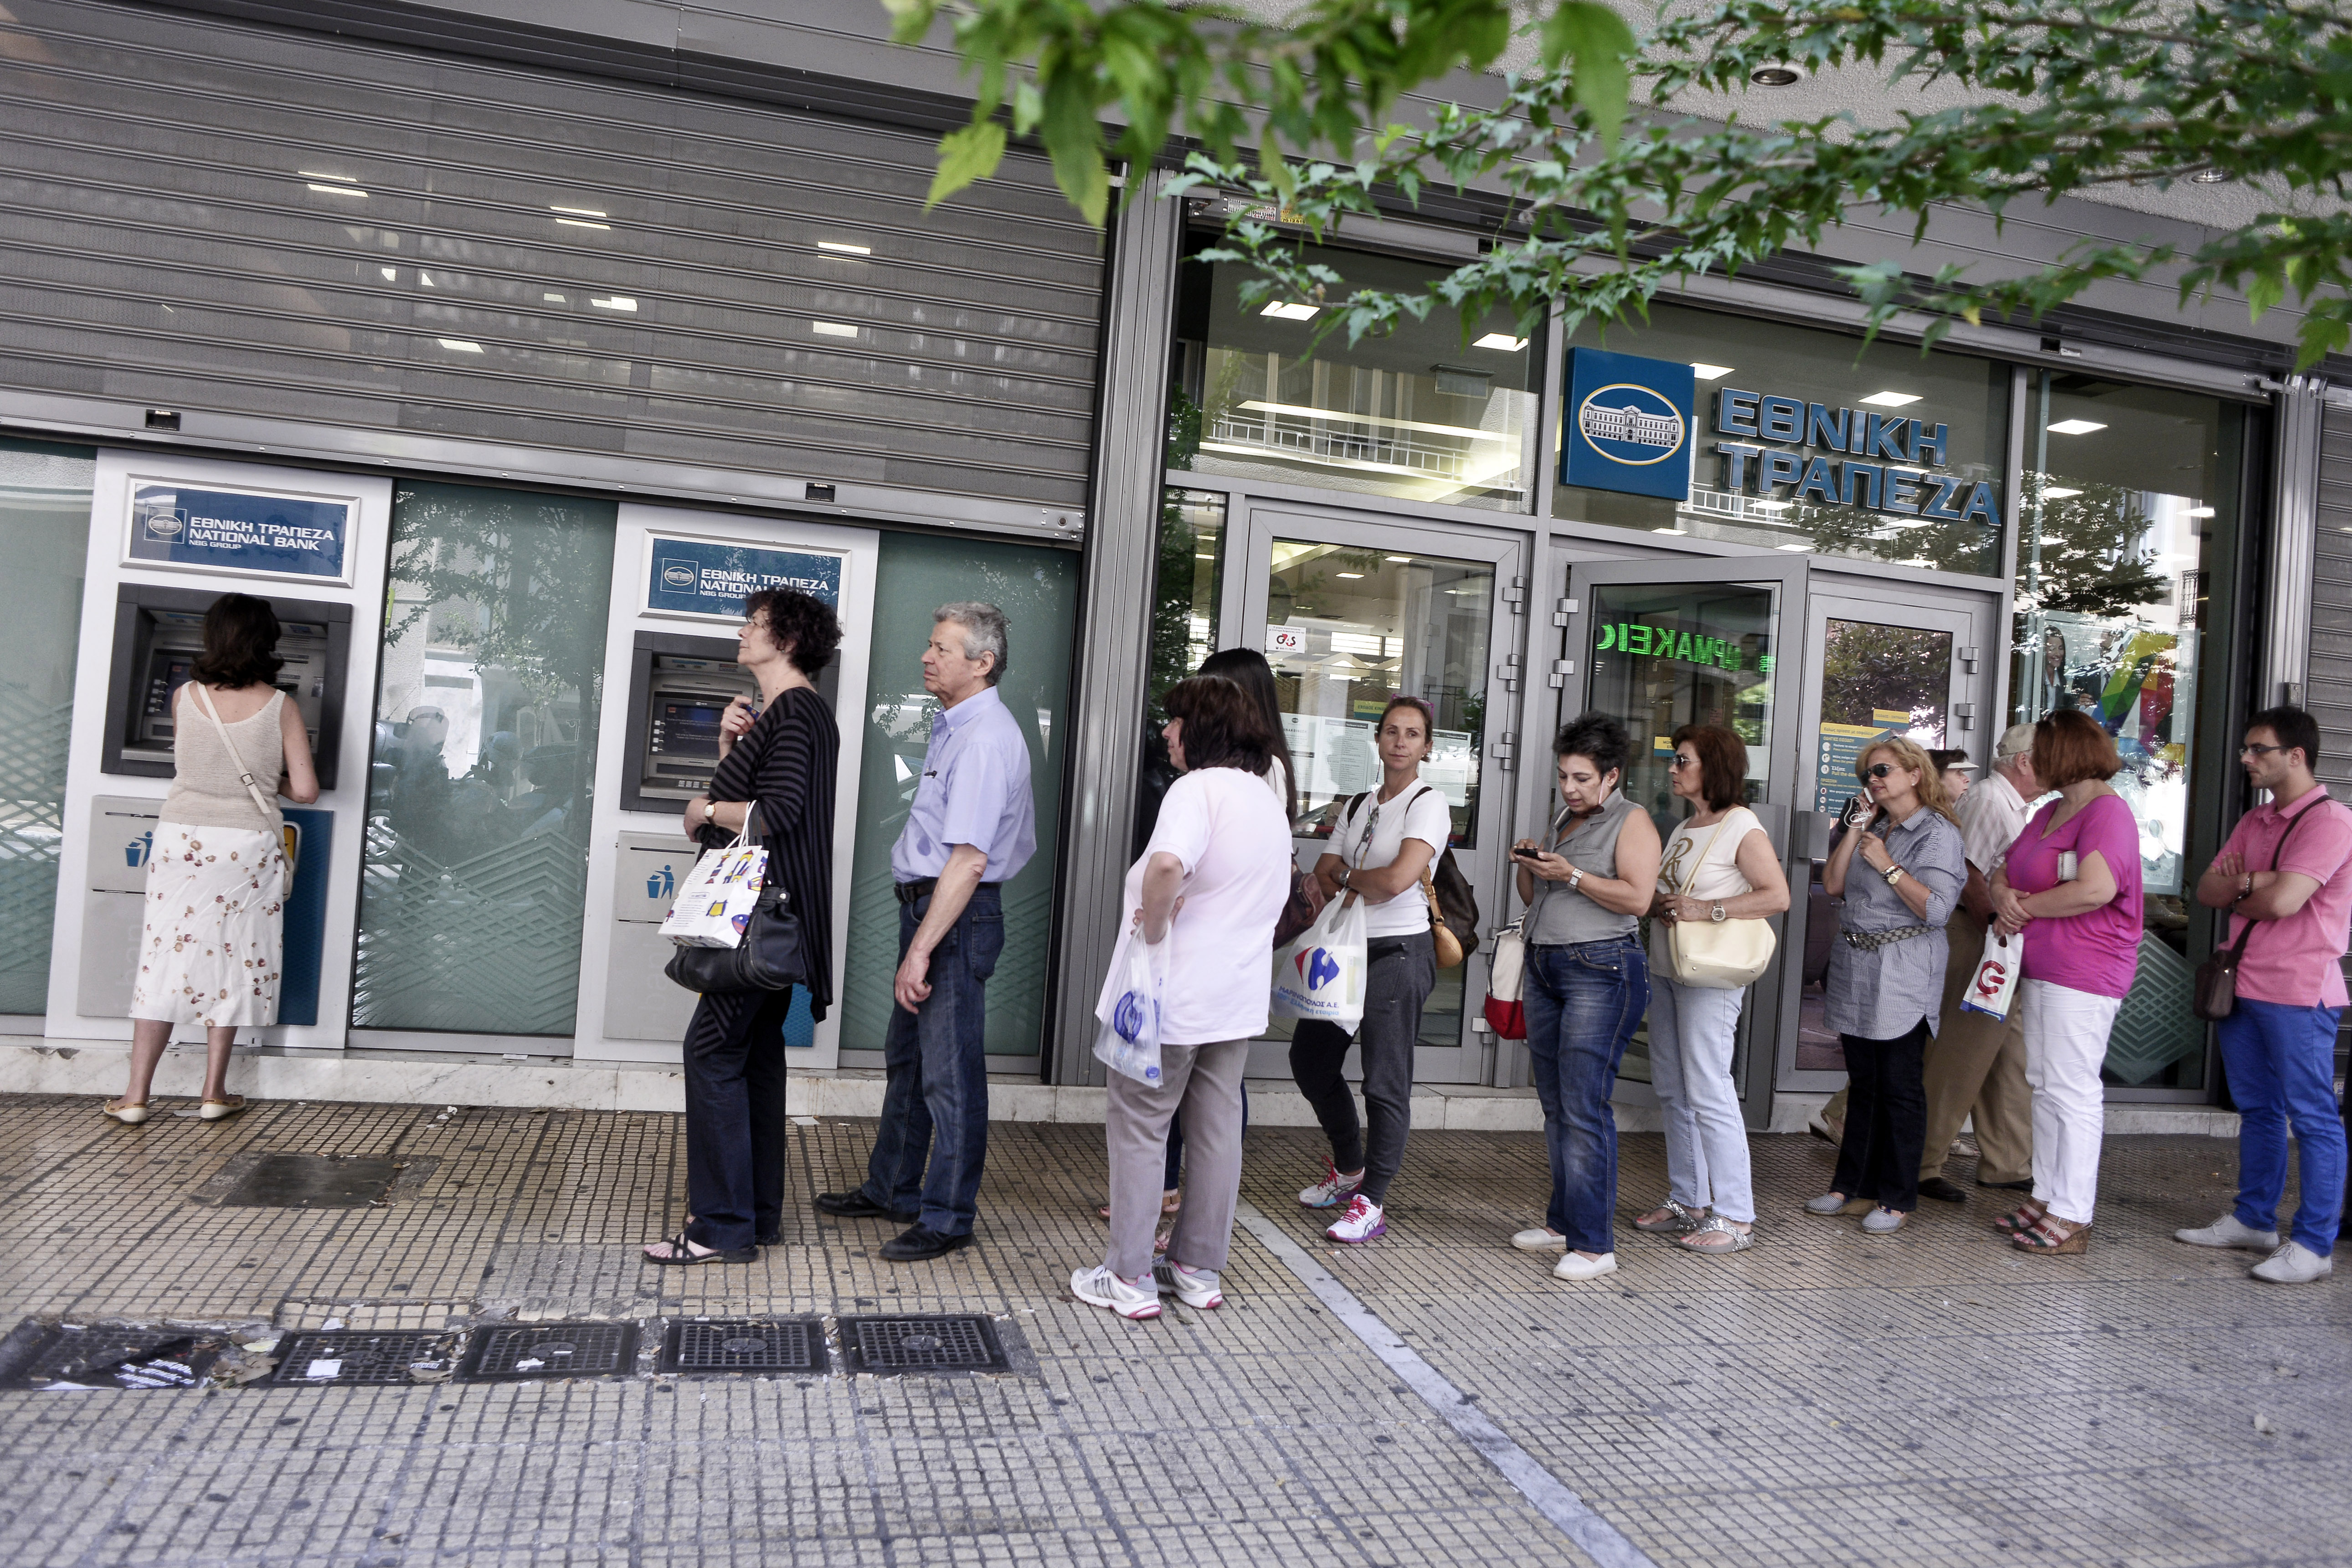 People line up at an ATM machine outside a bank on July 6, 2015 in Athens.